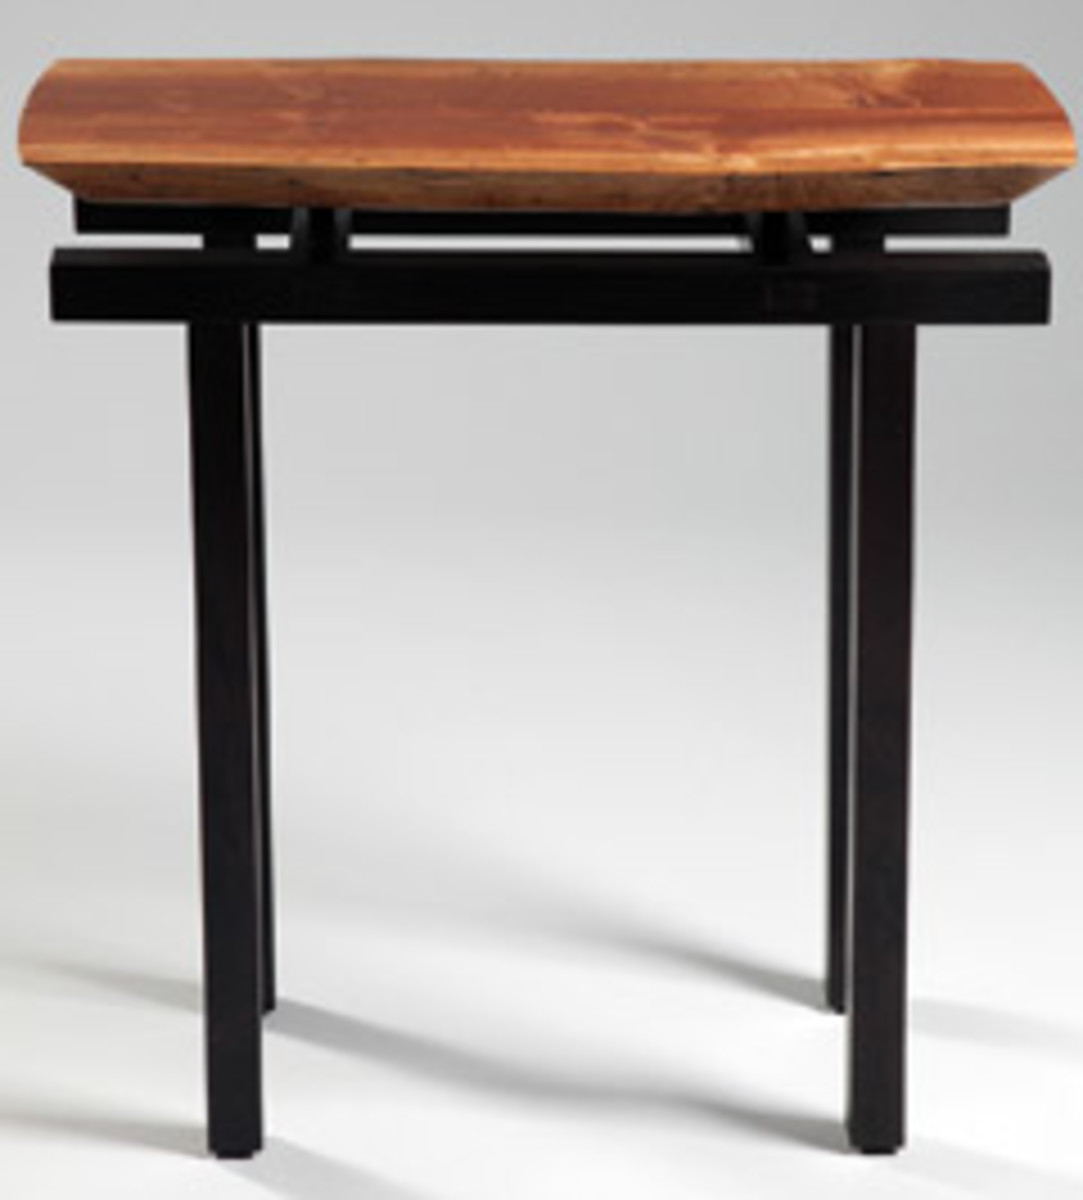 This table by Gary Leake of Coupeville, Wash., will be featured in the Whidbey Island Woodworker Guild's upcoming exhibit.